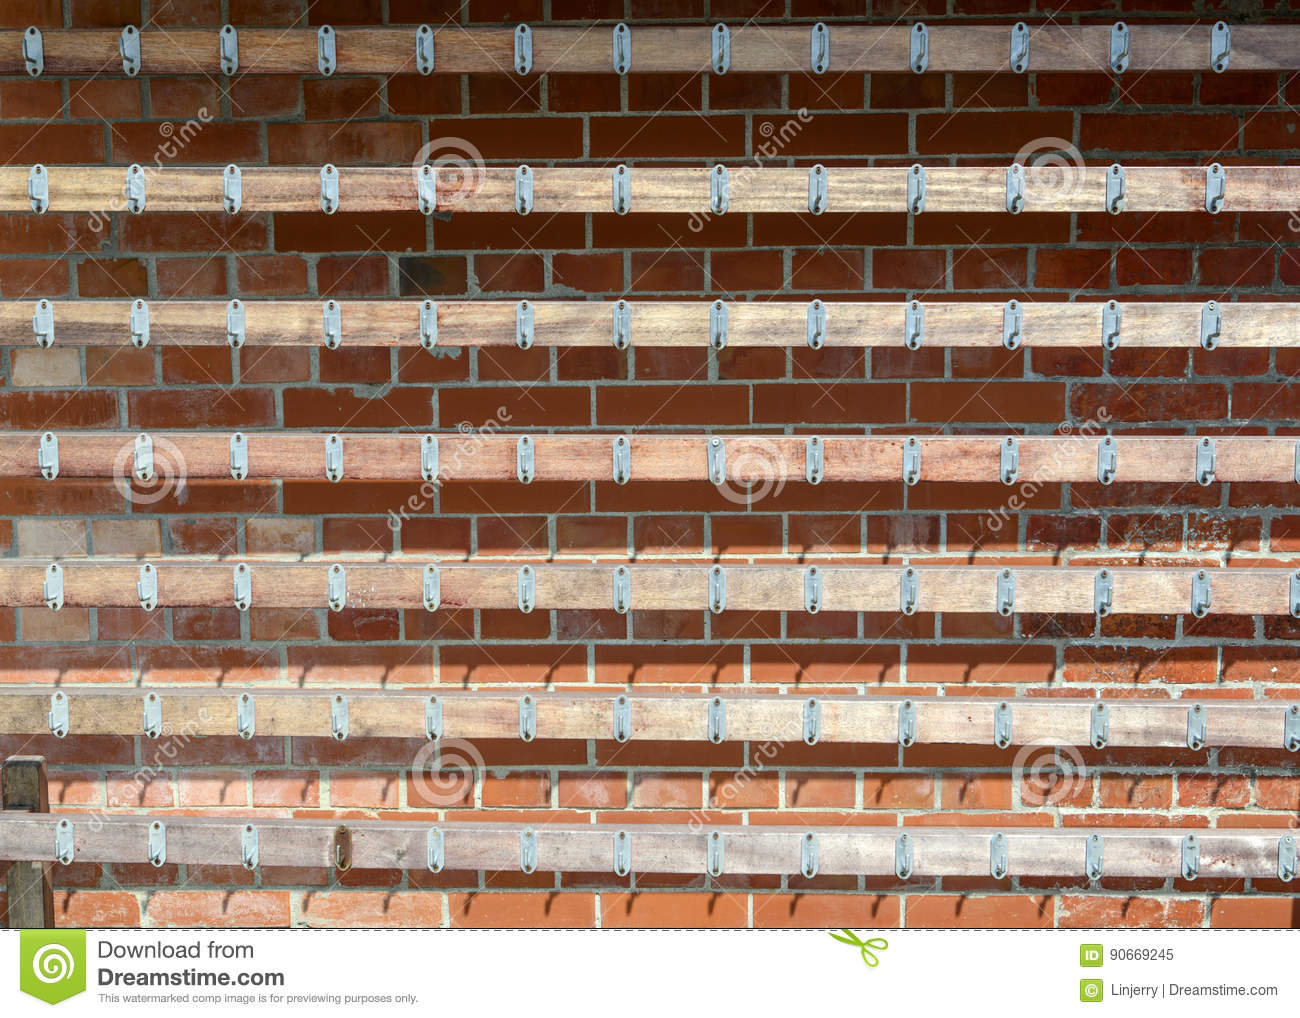 Rows Of Hooks On The Brick Wall Stock Image - Image of collection